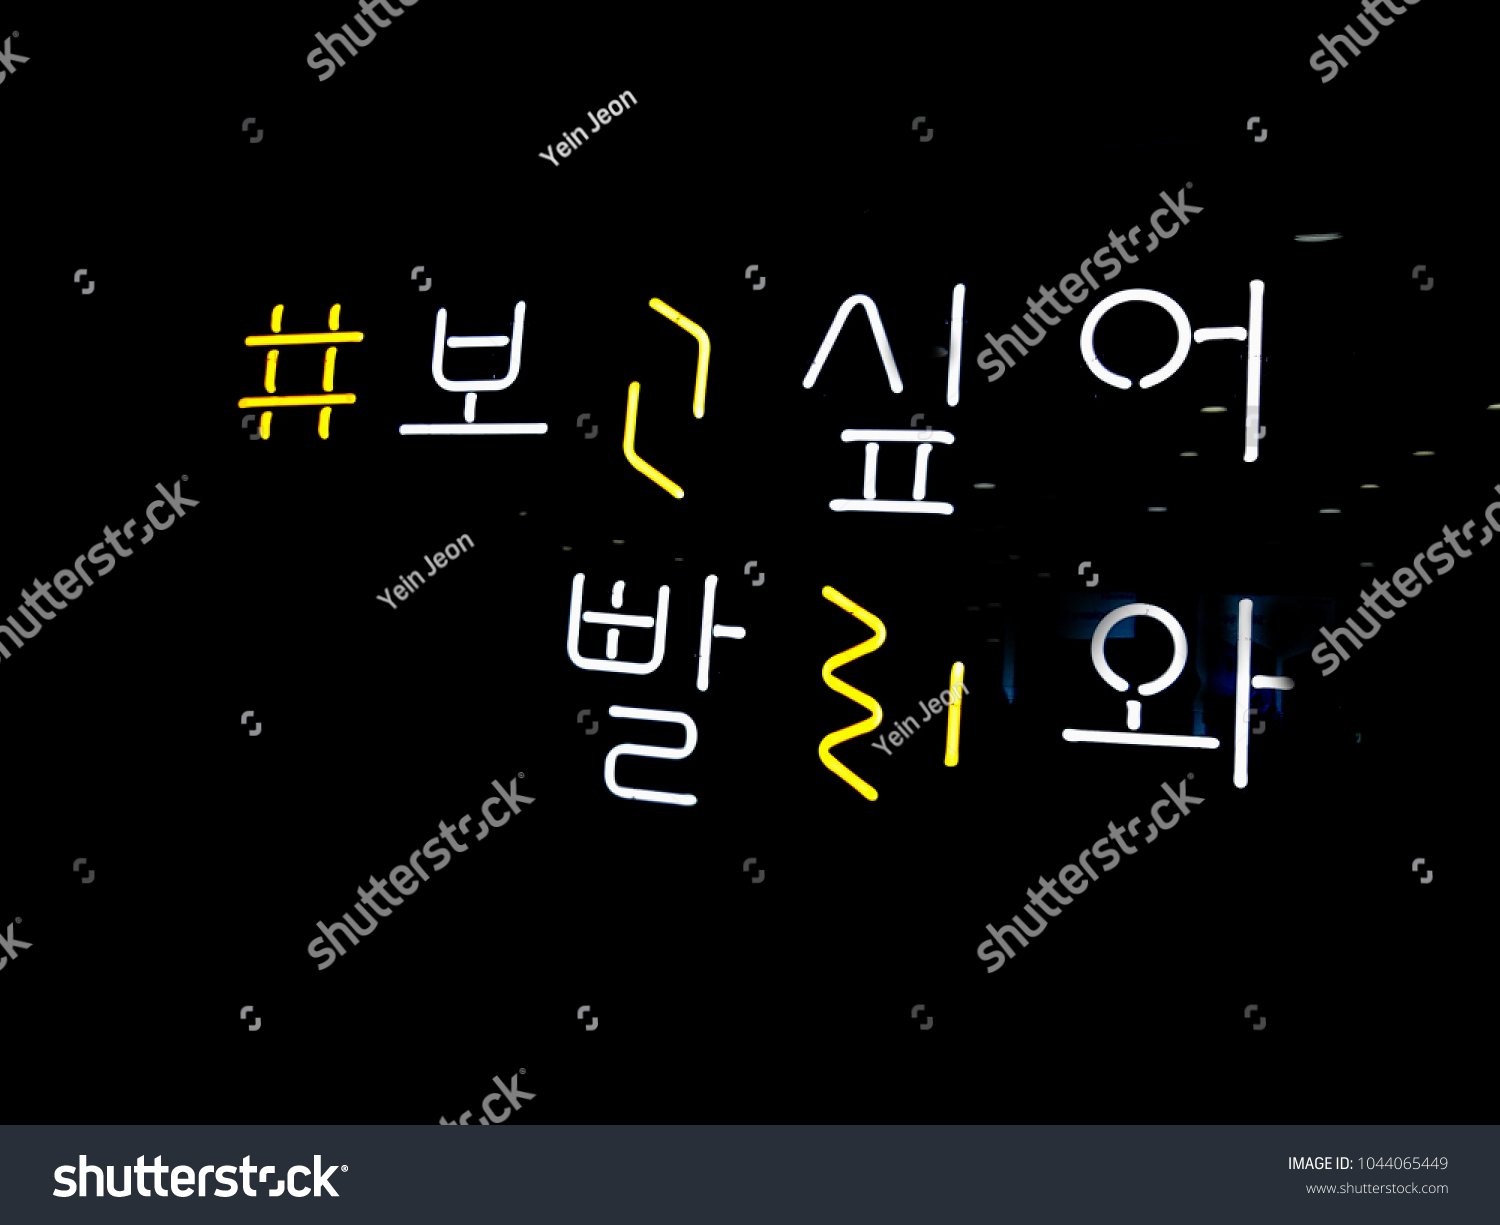 sign for i miss you